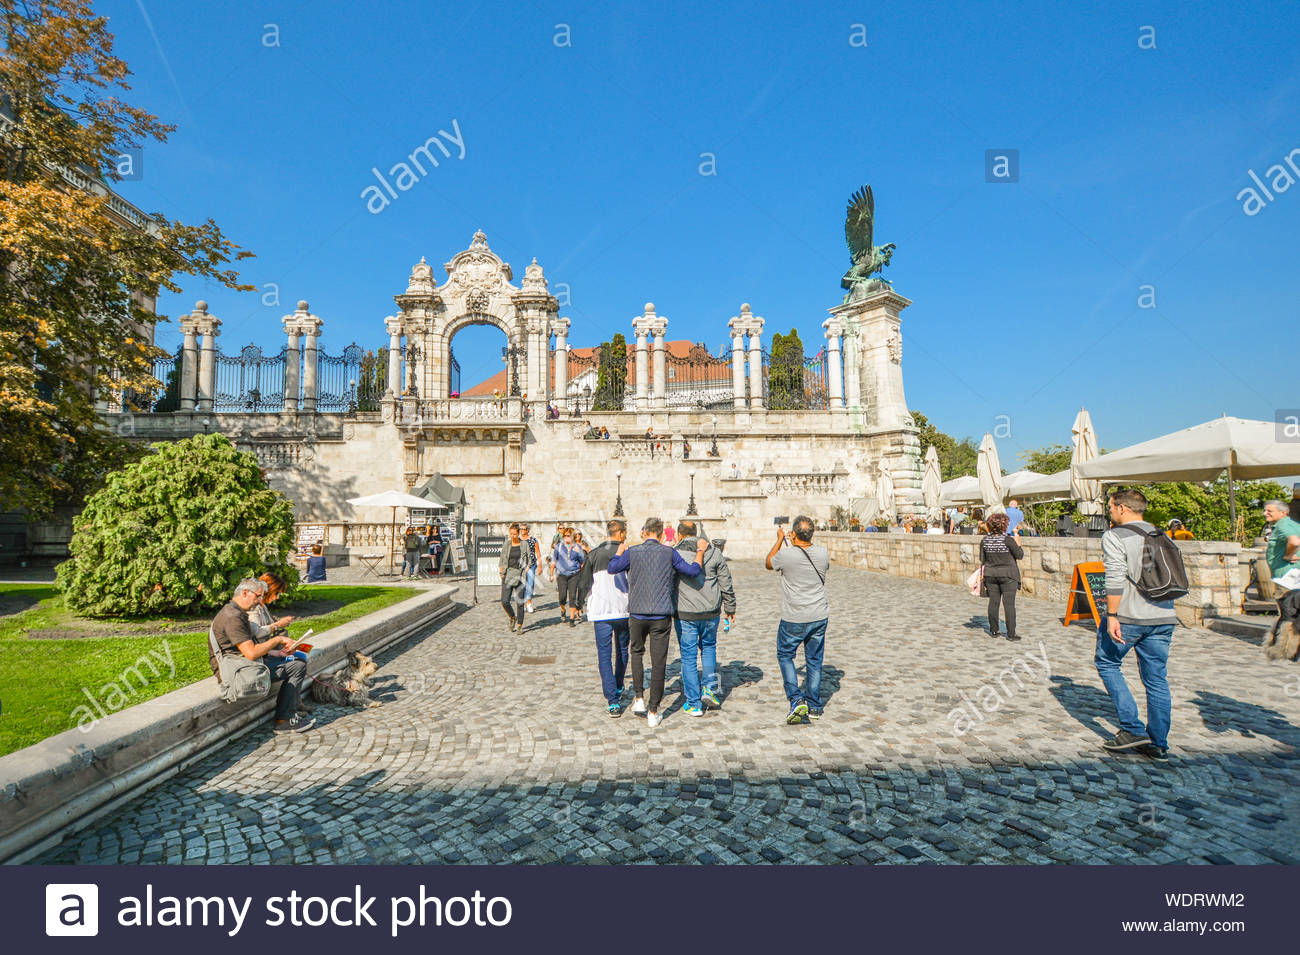 Tourists walk together and enjoy a sunny day in early autumn at the Buda Castle Hill District near the Turul bird statue in Budapest Hungary Stock Photo